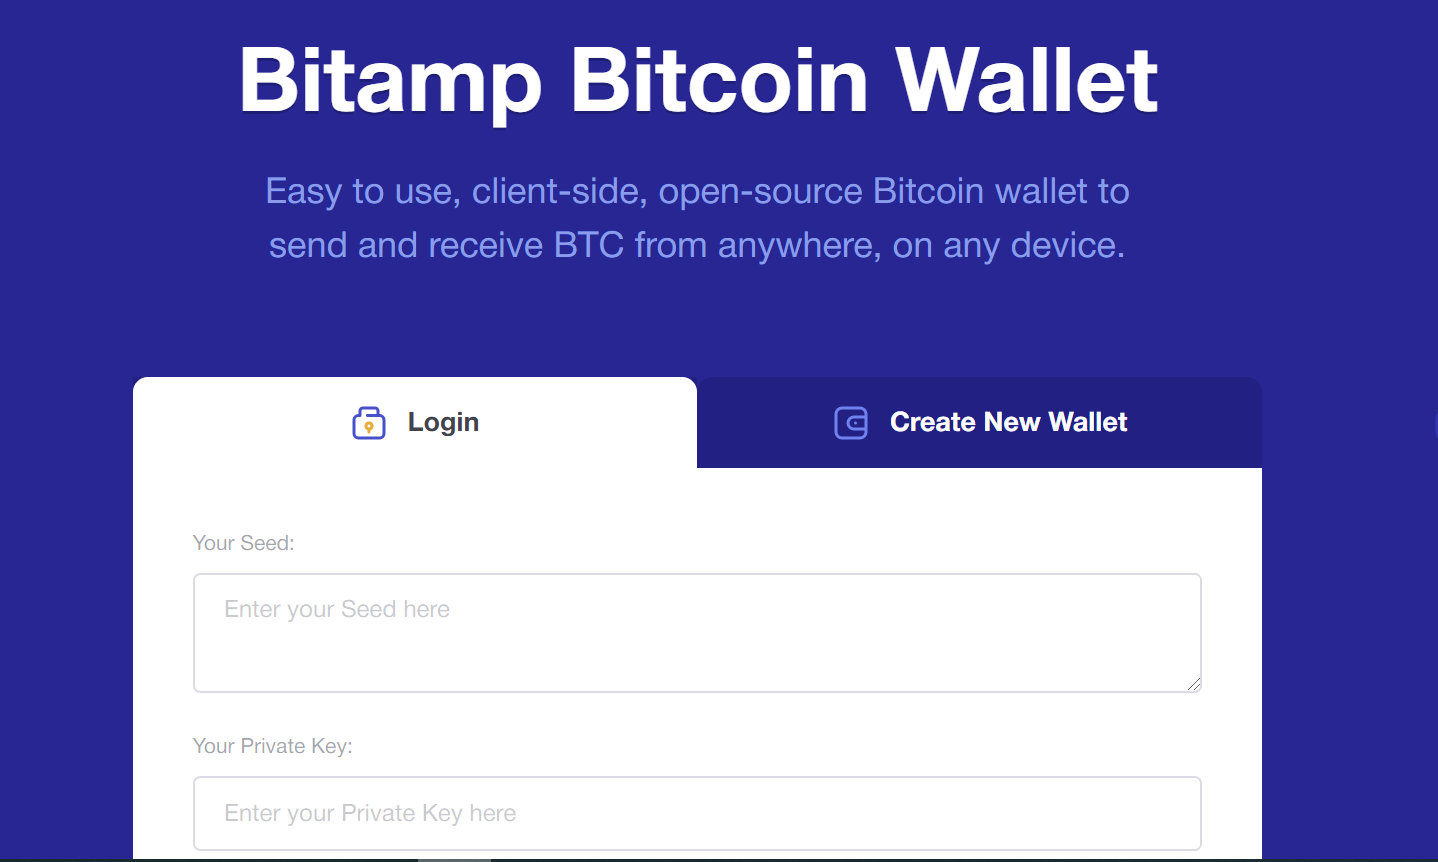 i want to open a bitcoin wallet